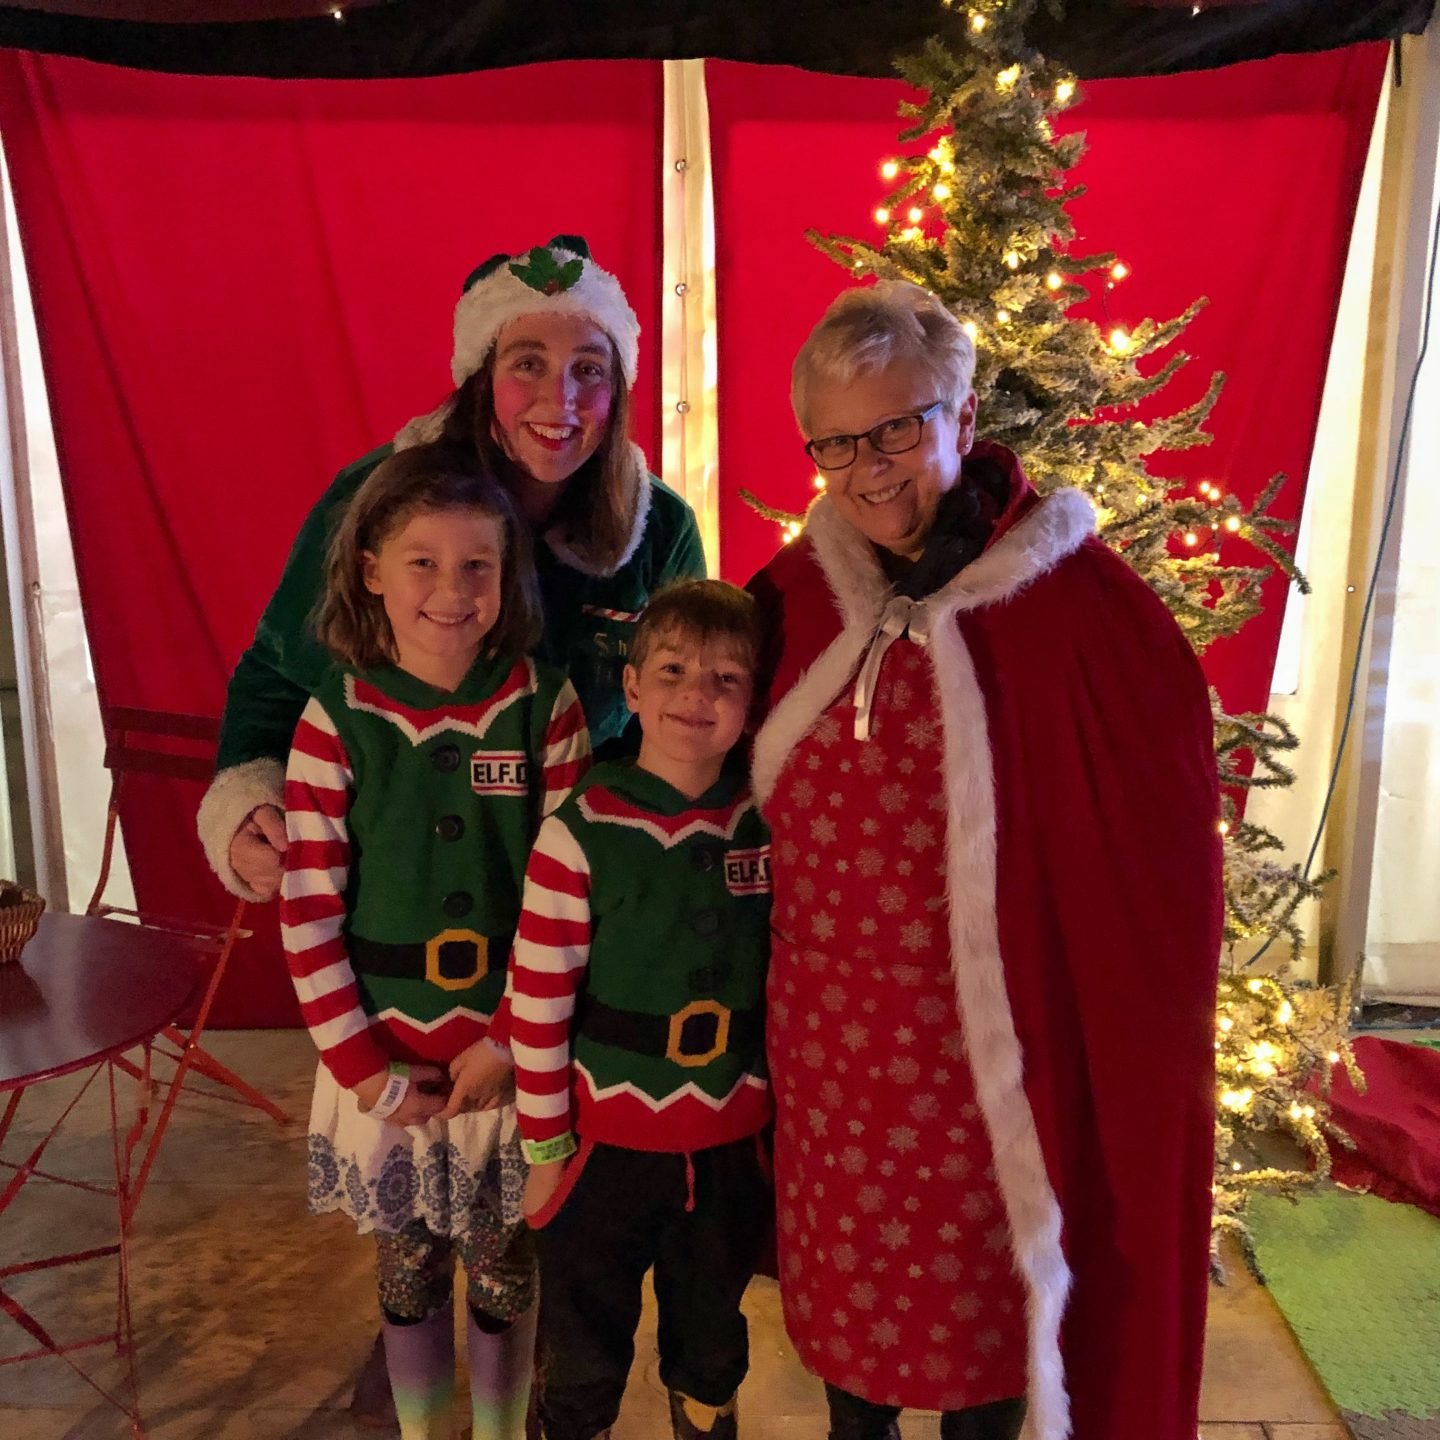 A photo of my two children in their elf jumpers standing with Mrs Christmas with an elf as they wait to see Father Christmas at the Cotswold Farm Park.